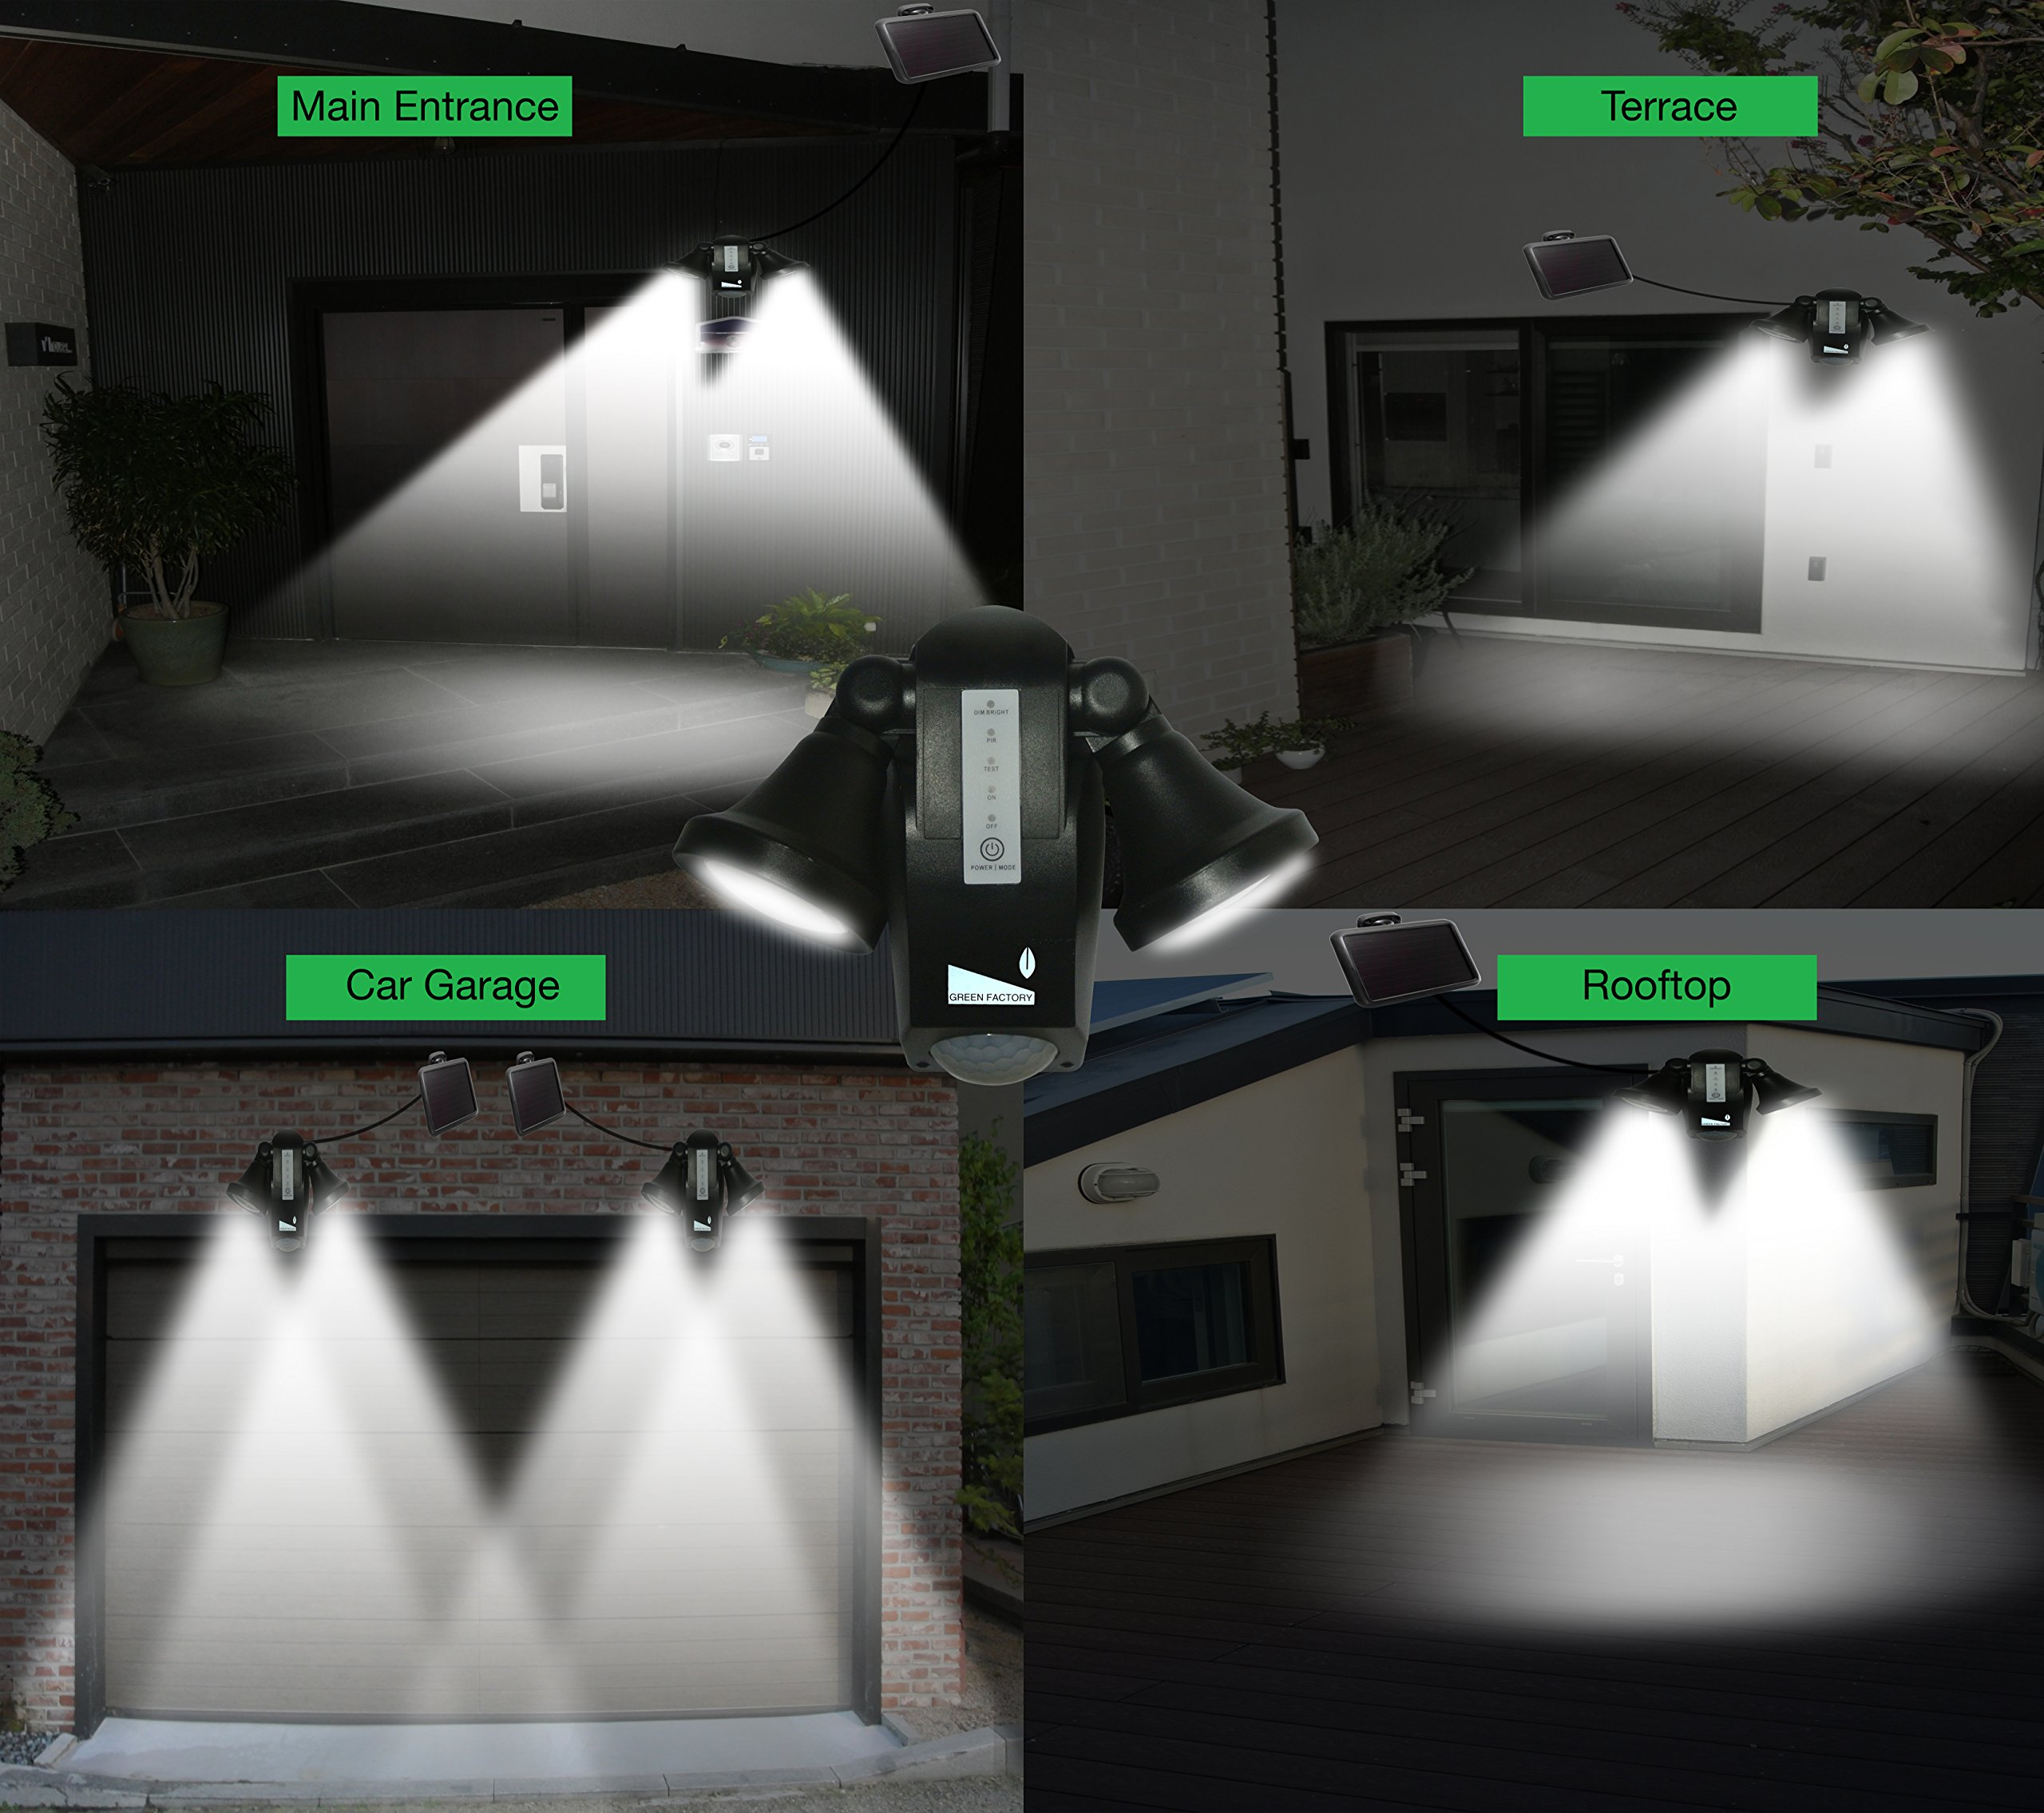 GREEN FACTORY 2017 New Solar Security Motion Sensor Lights 18SMD LED Outdoor Weatherproof Wall Lights With 5 Modes By Finger Touch Control For Rooftop Deck Terrace Main Entrance Garage by GREEN FACTORY